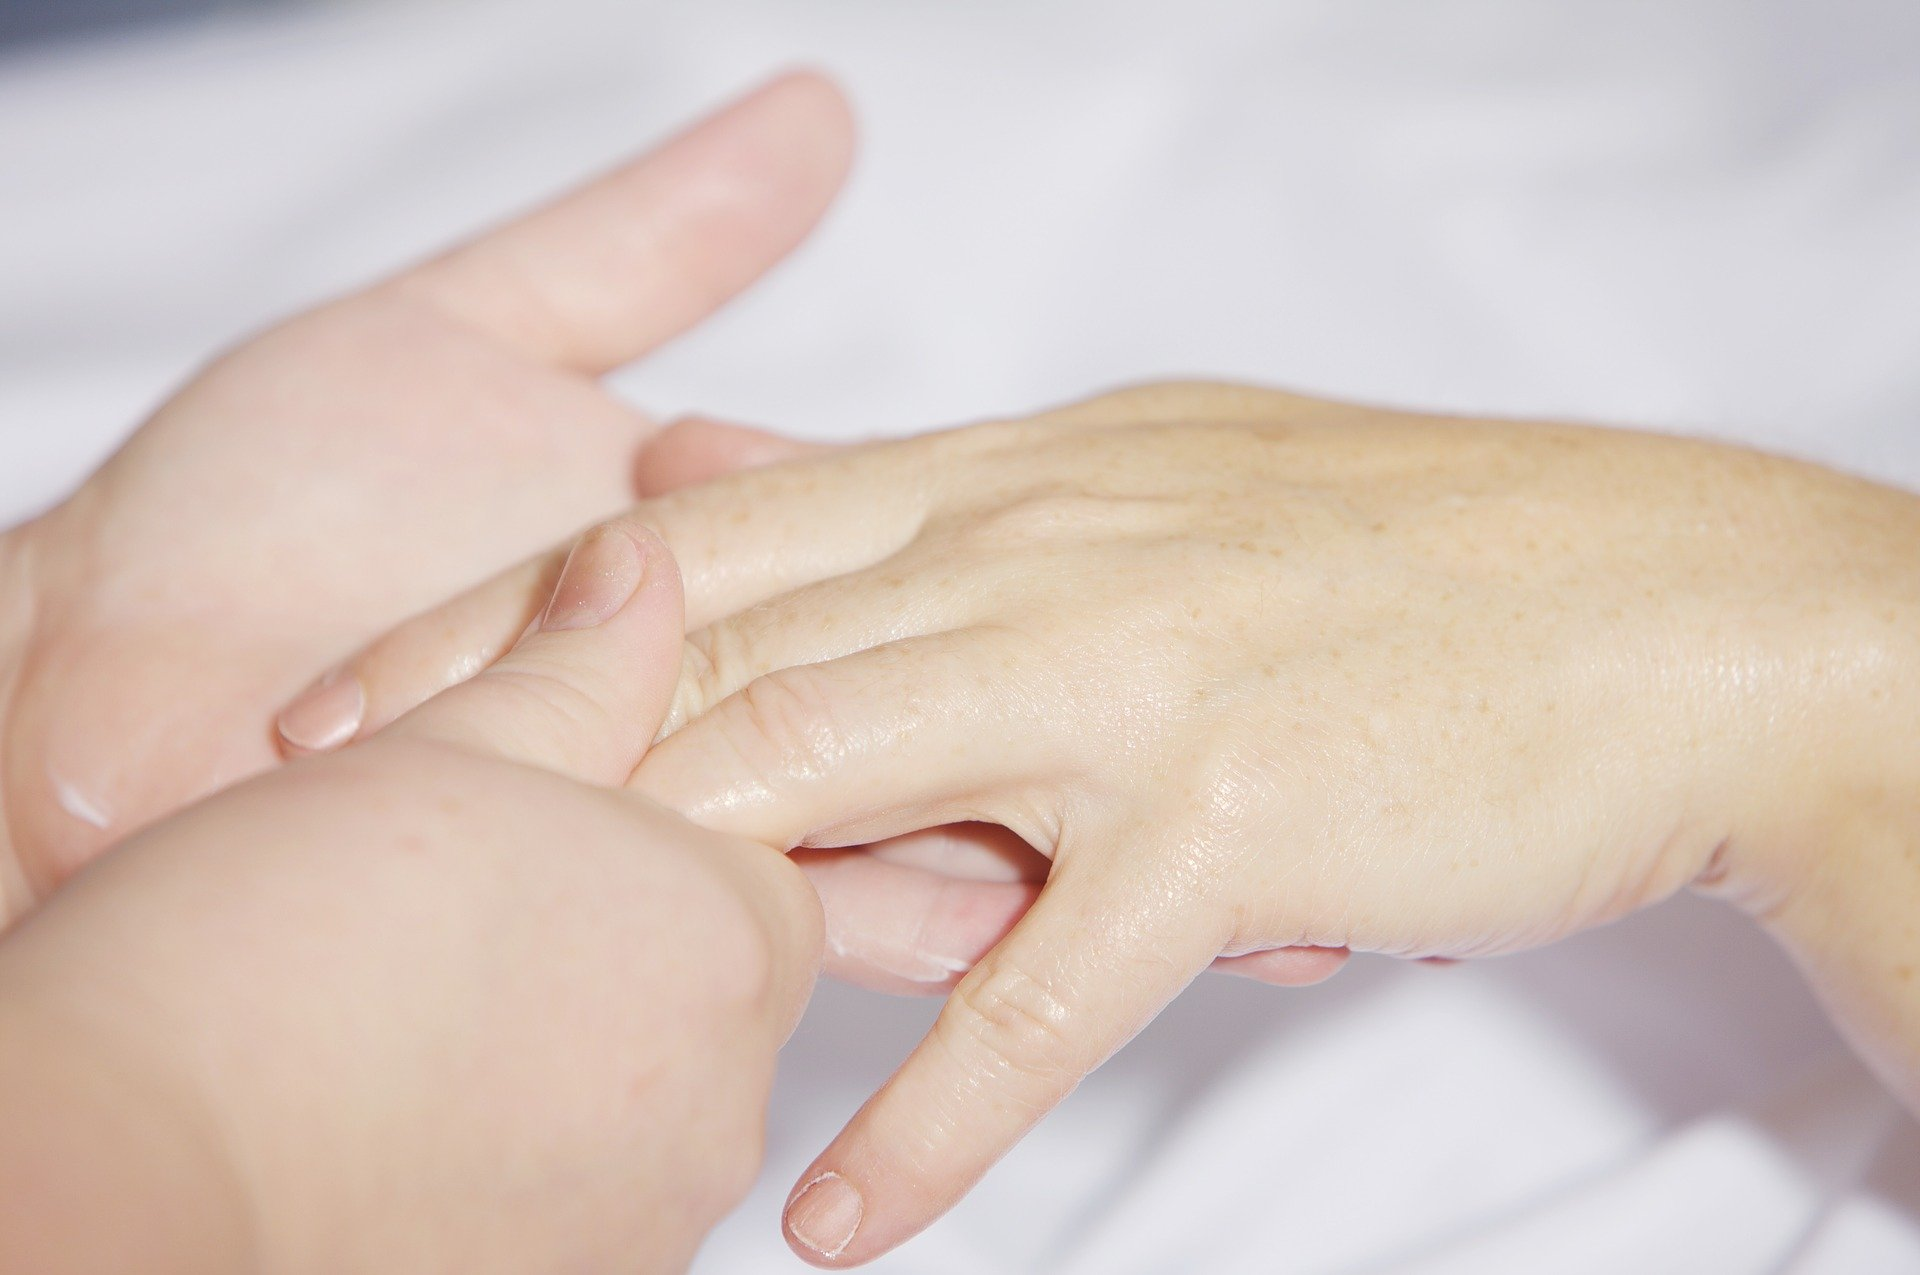 Treating a Wrist Fracture